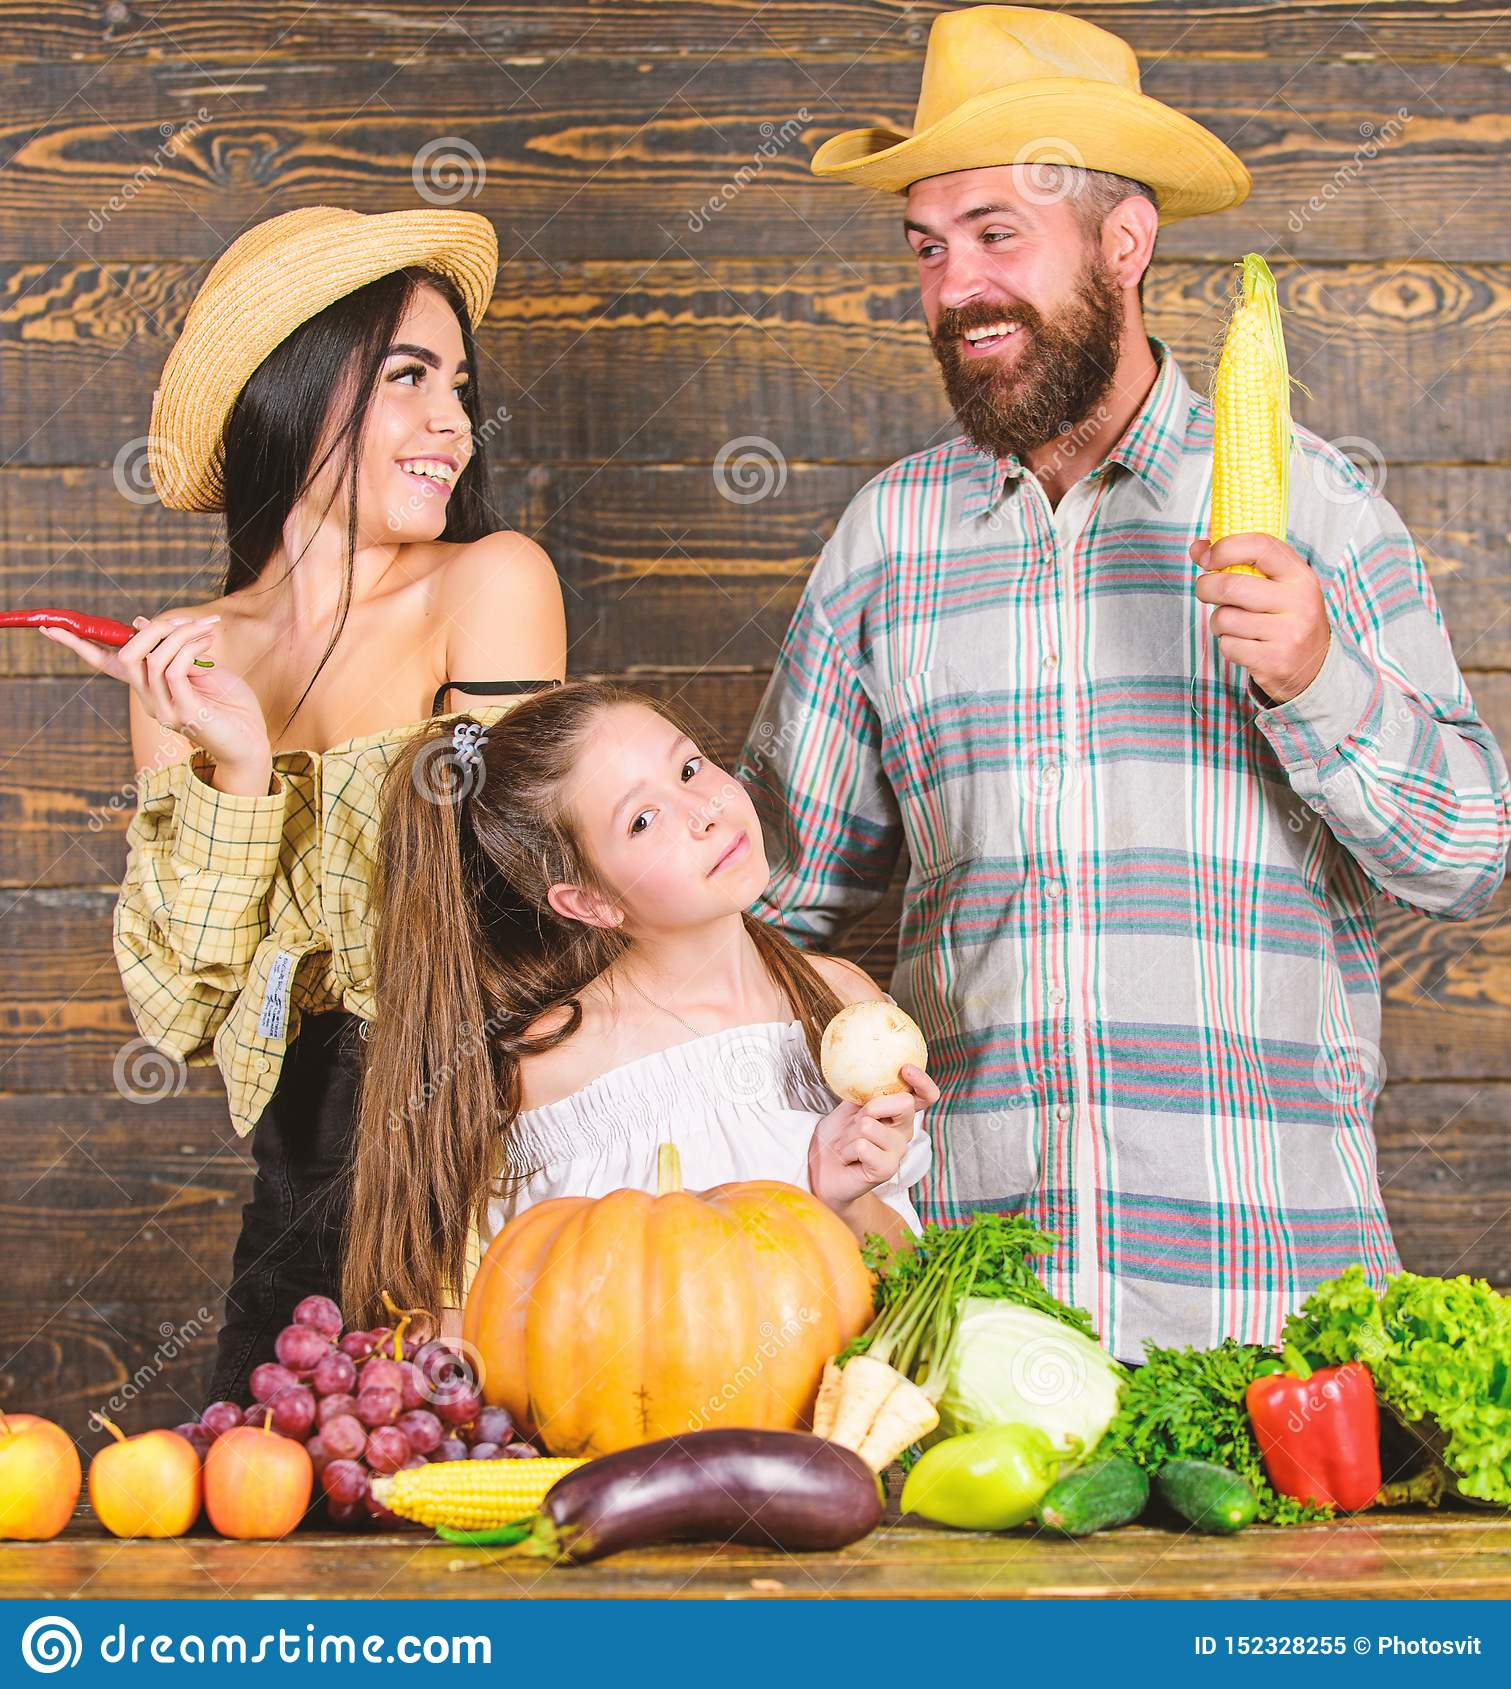 Parents and daughter celebrate autumn harvest festival. Family rustic style farmers at market with vegetables fruits and